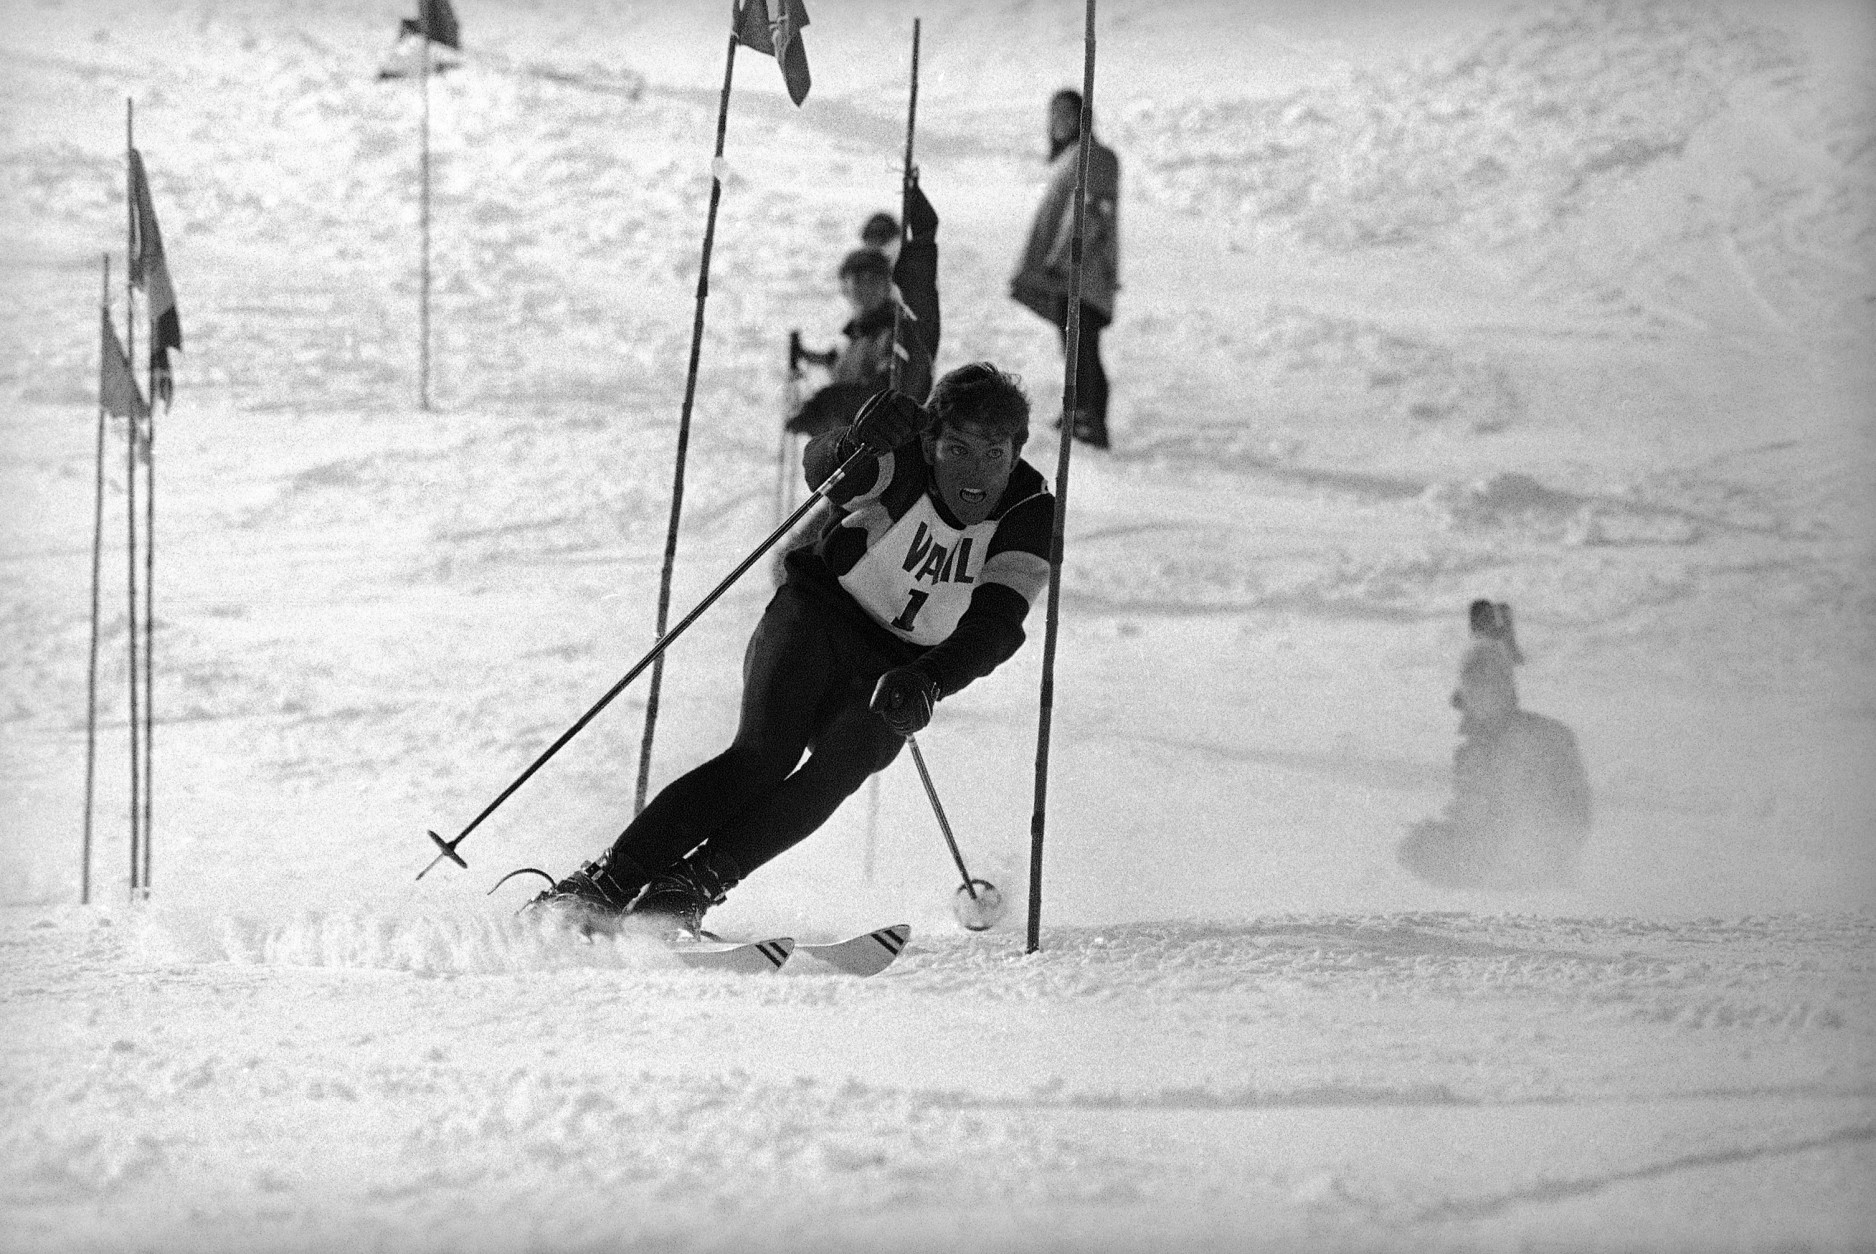 """Vladimir """"Spider"""" Sabich of Kyburz, Calif., spins through gate in men's slalom at Vail International Team races on March 7, 1969. Sabich, who had best time in first run, placed fifth, the only American in the top 15. Austria was first, France second and U.S. tied for third with Switzerland. (AP Photo/Robert D. Scott)"""